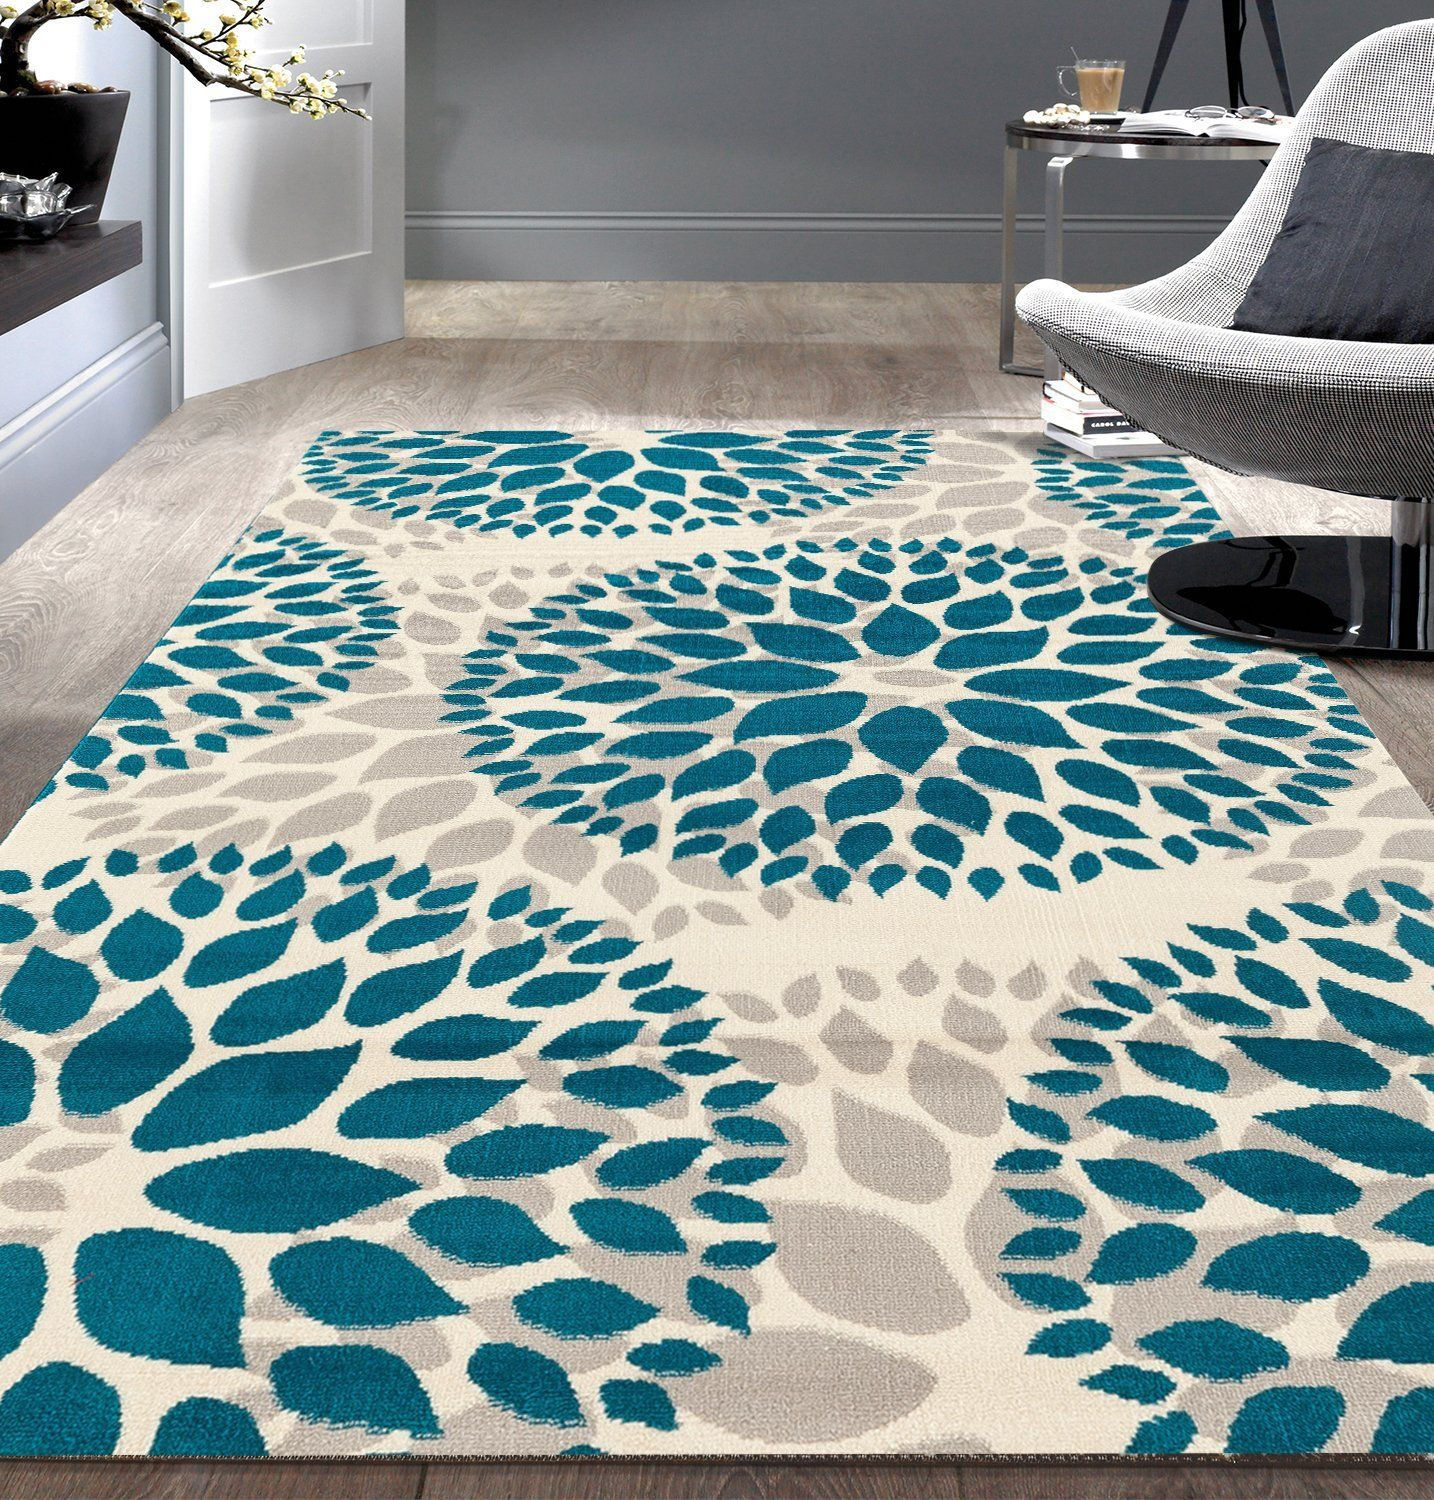 15 Modern Contemporary Rugs Under 100 On Amazon With At Least 4